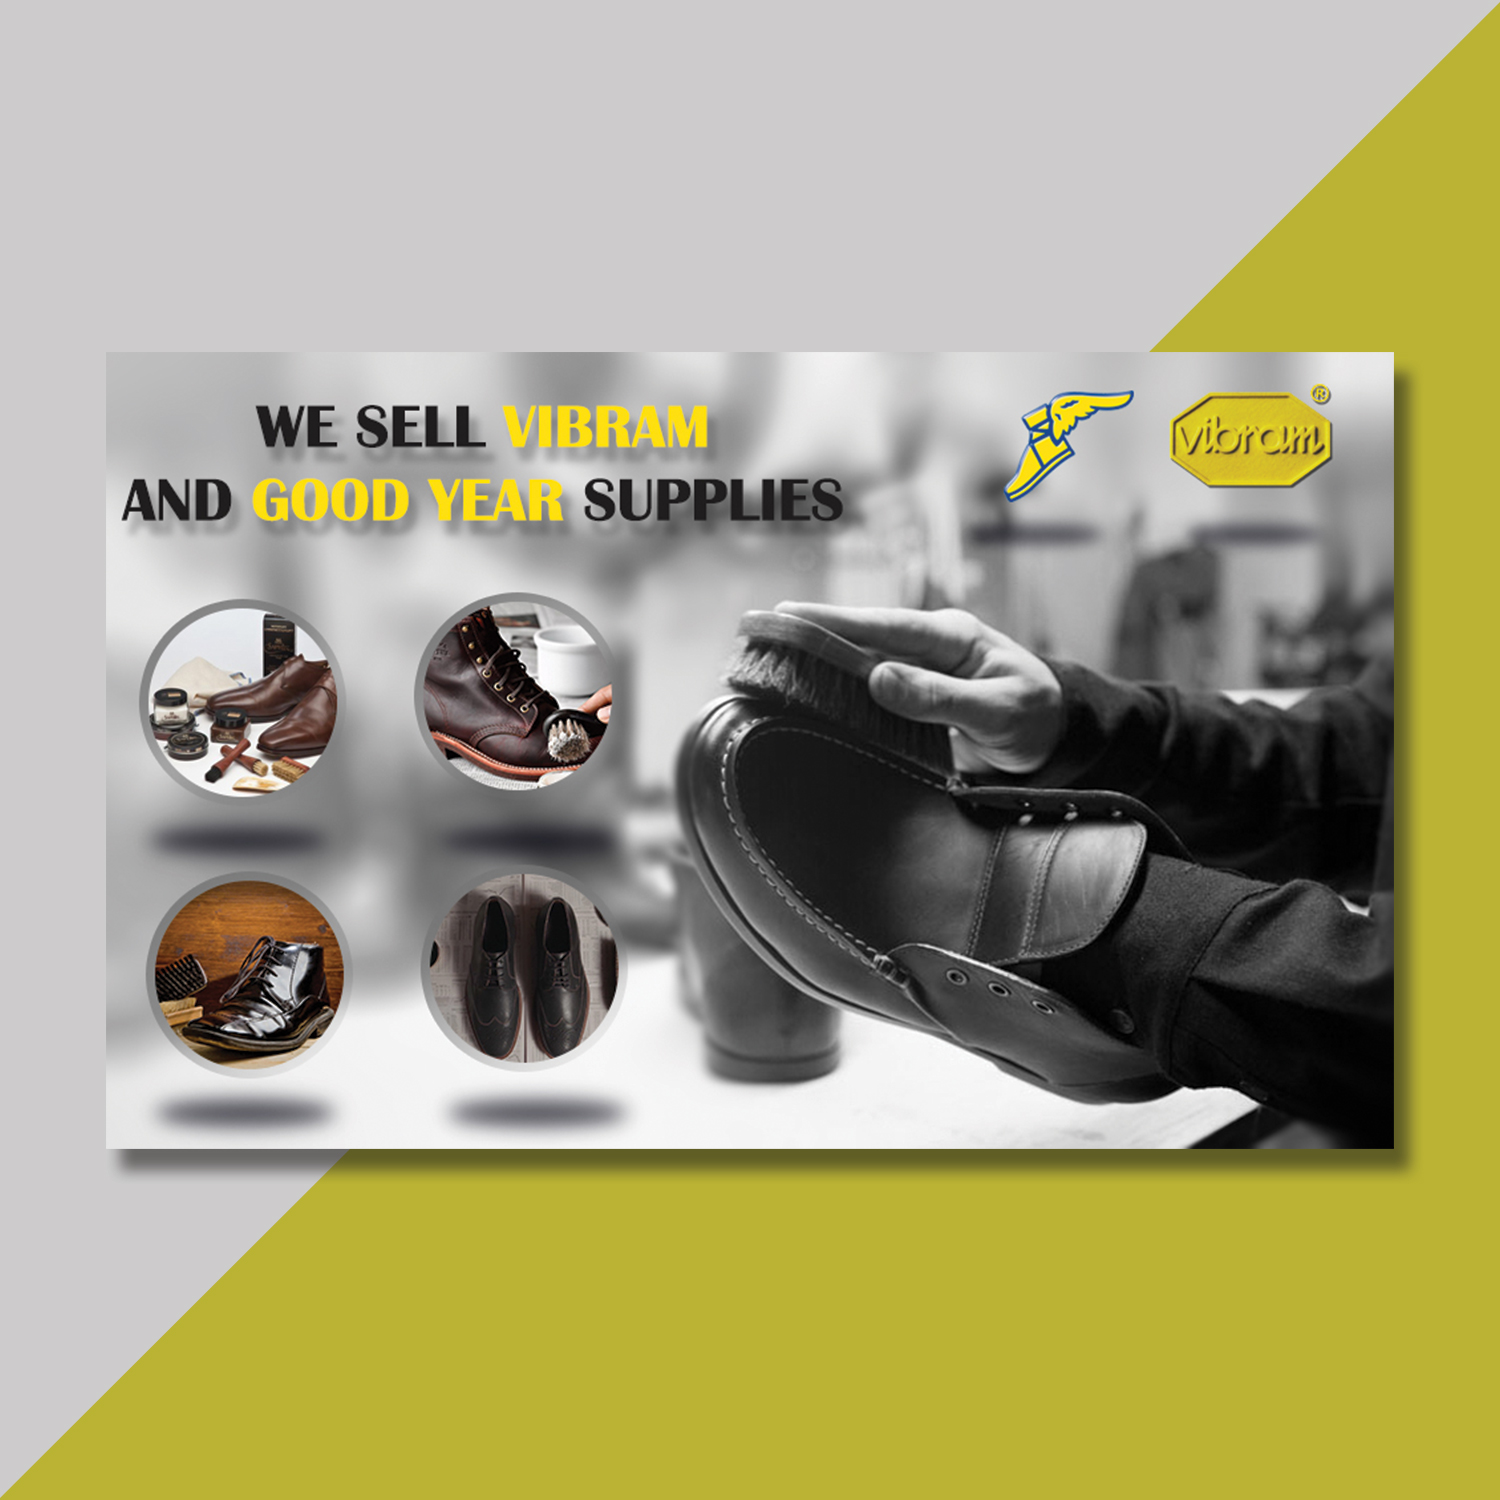 Good year shoes banner design by Badri Design